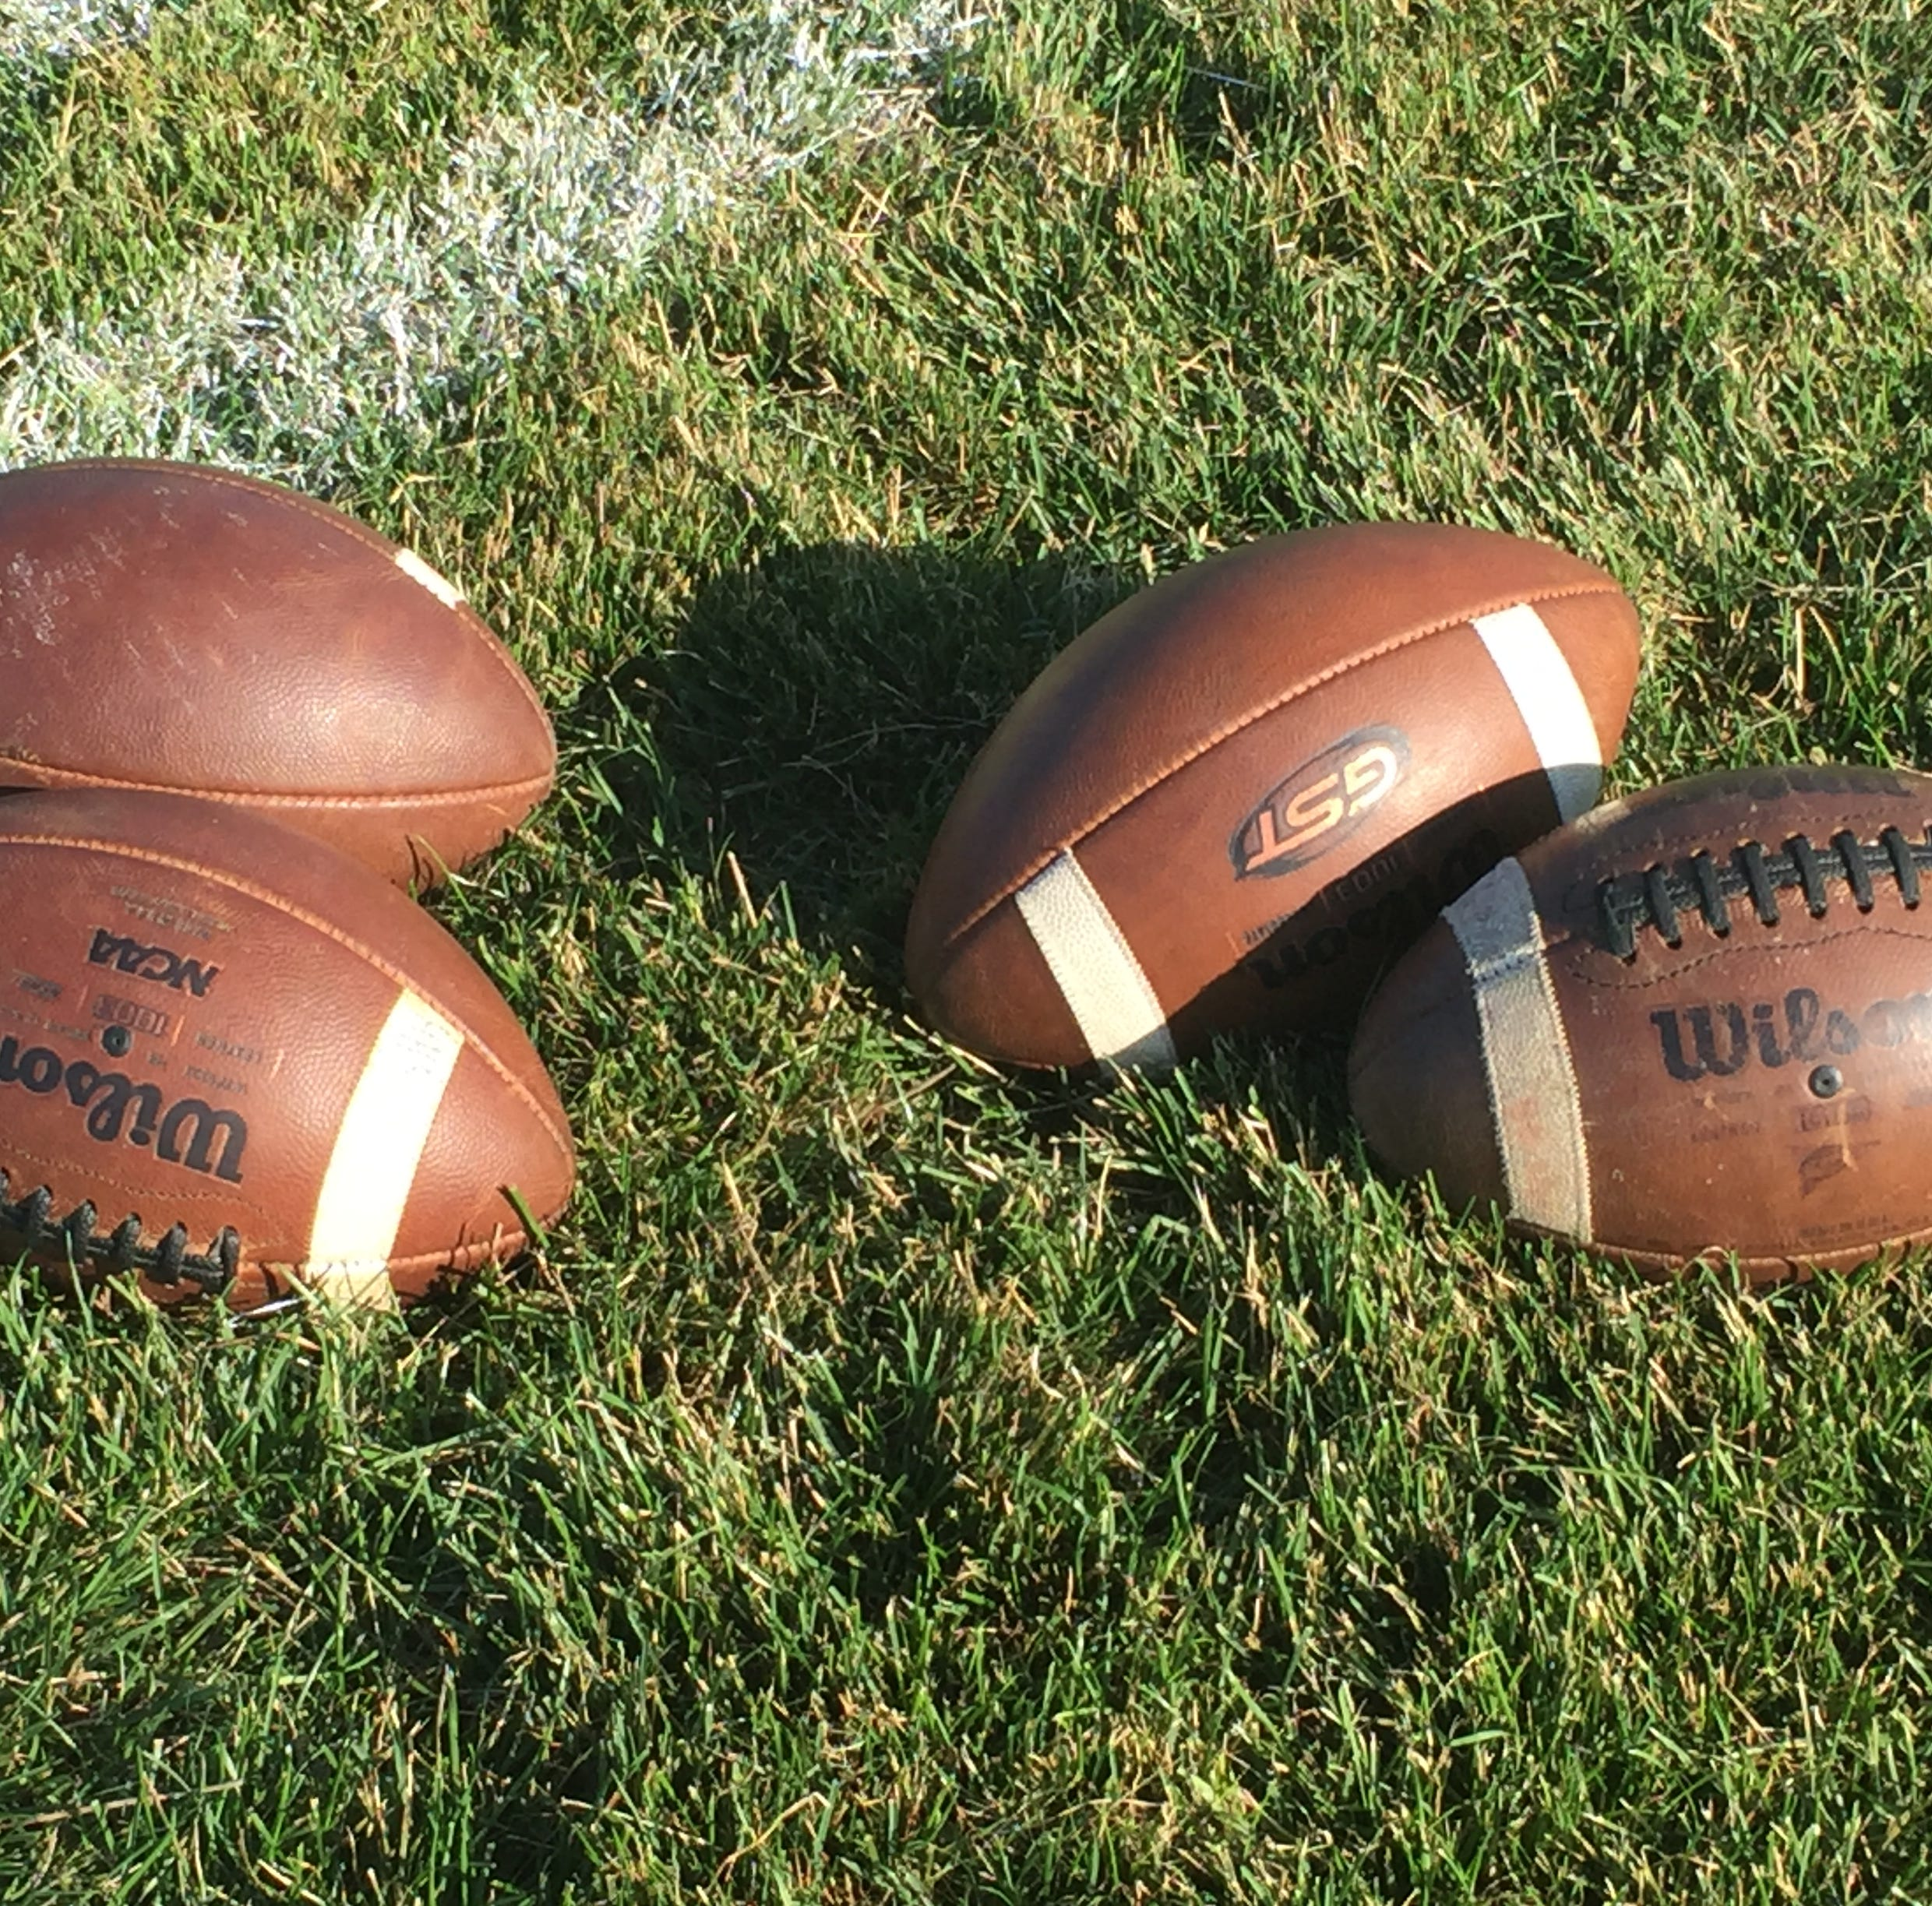 The Marion Star Football Player of Week 8 Poll winner is ...